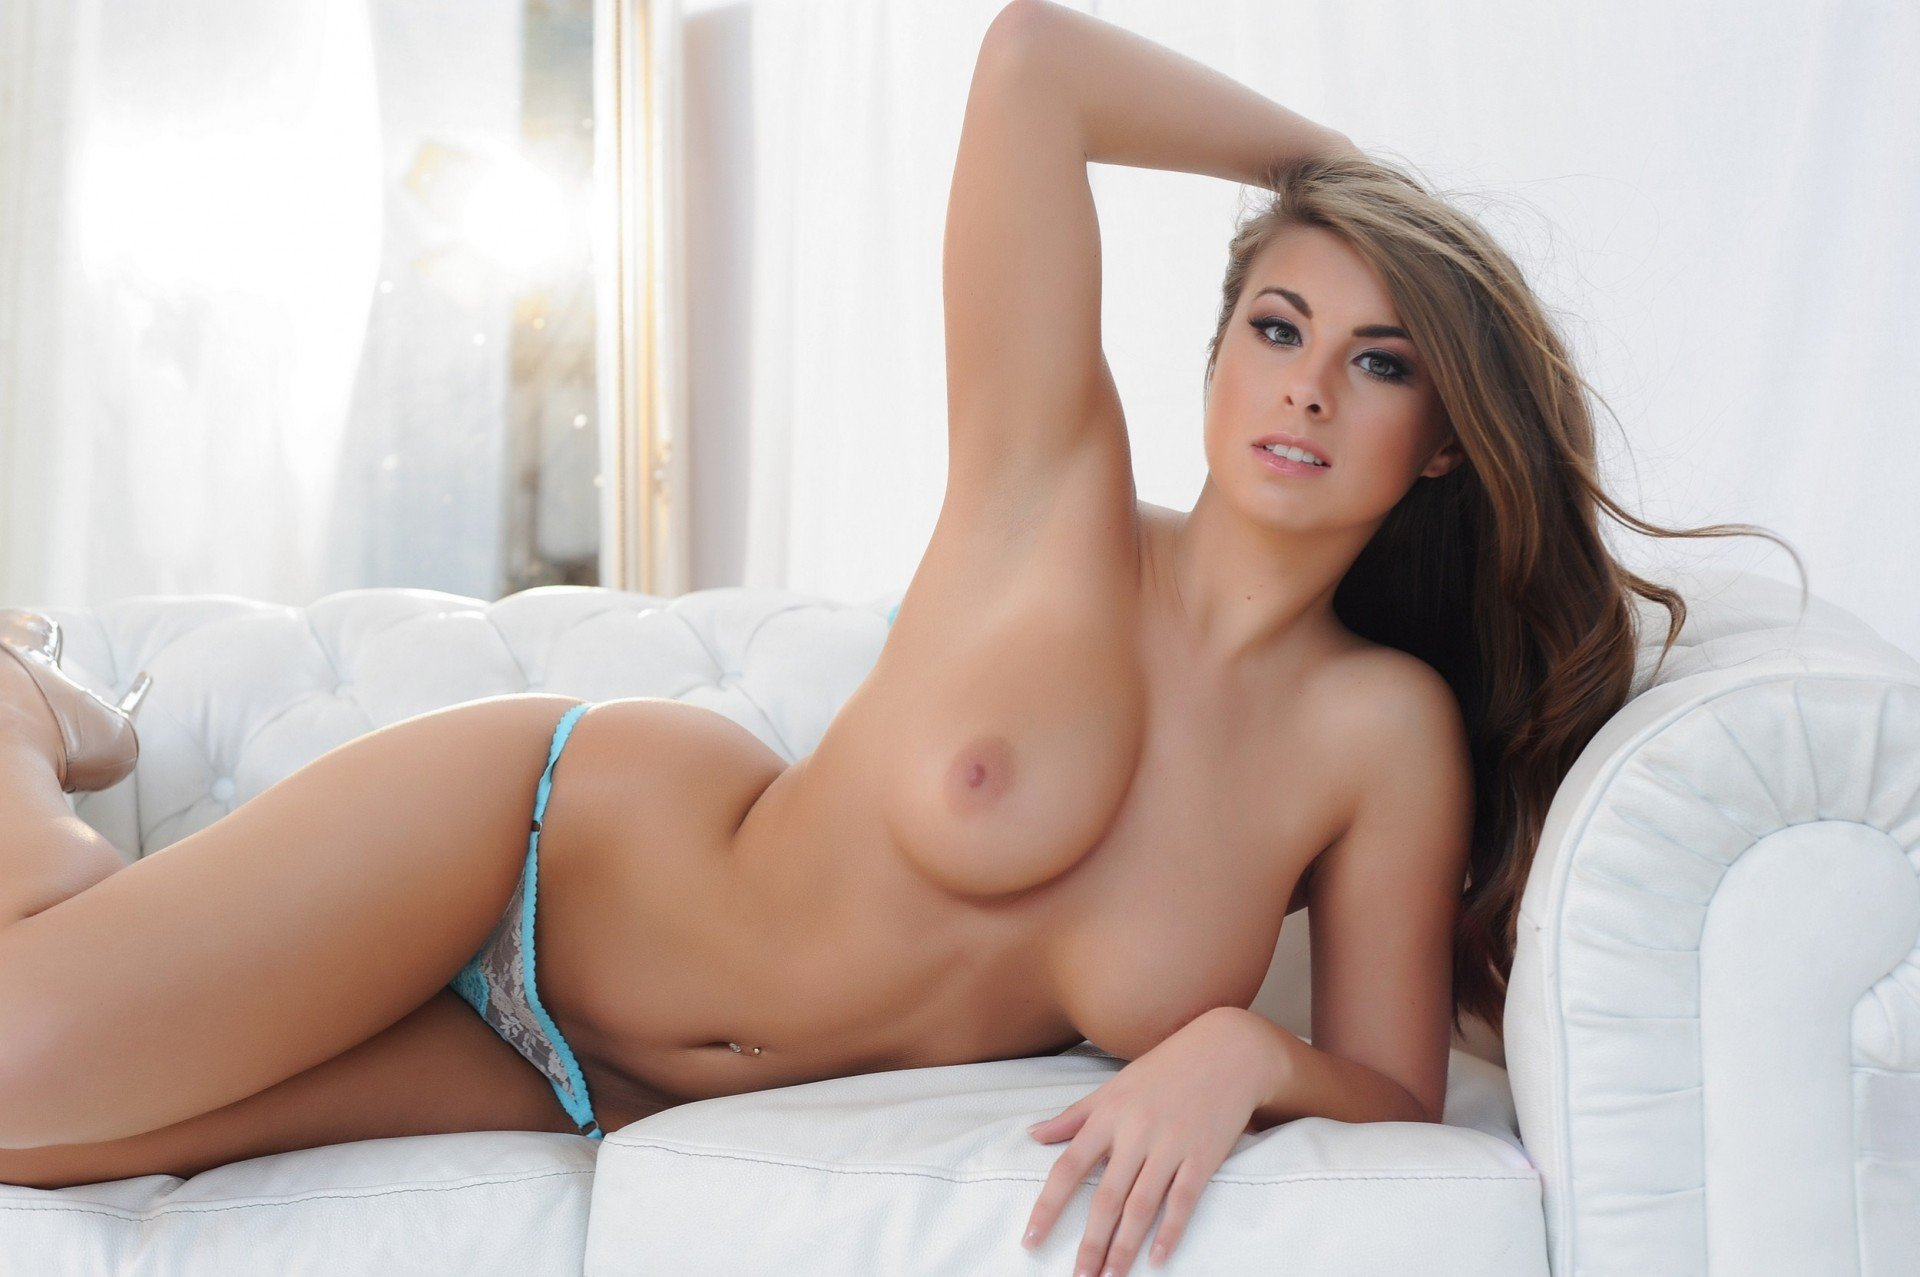 Links Toyoung Nude Models